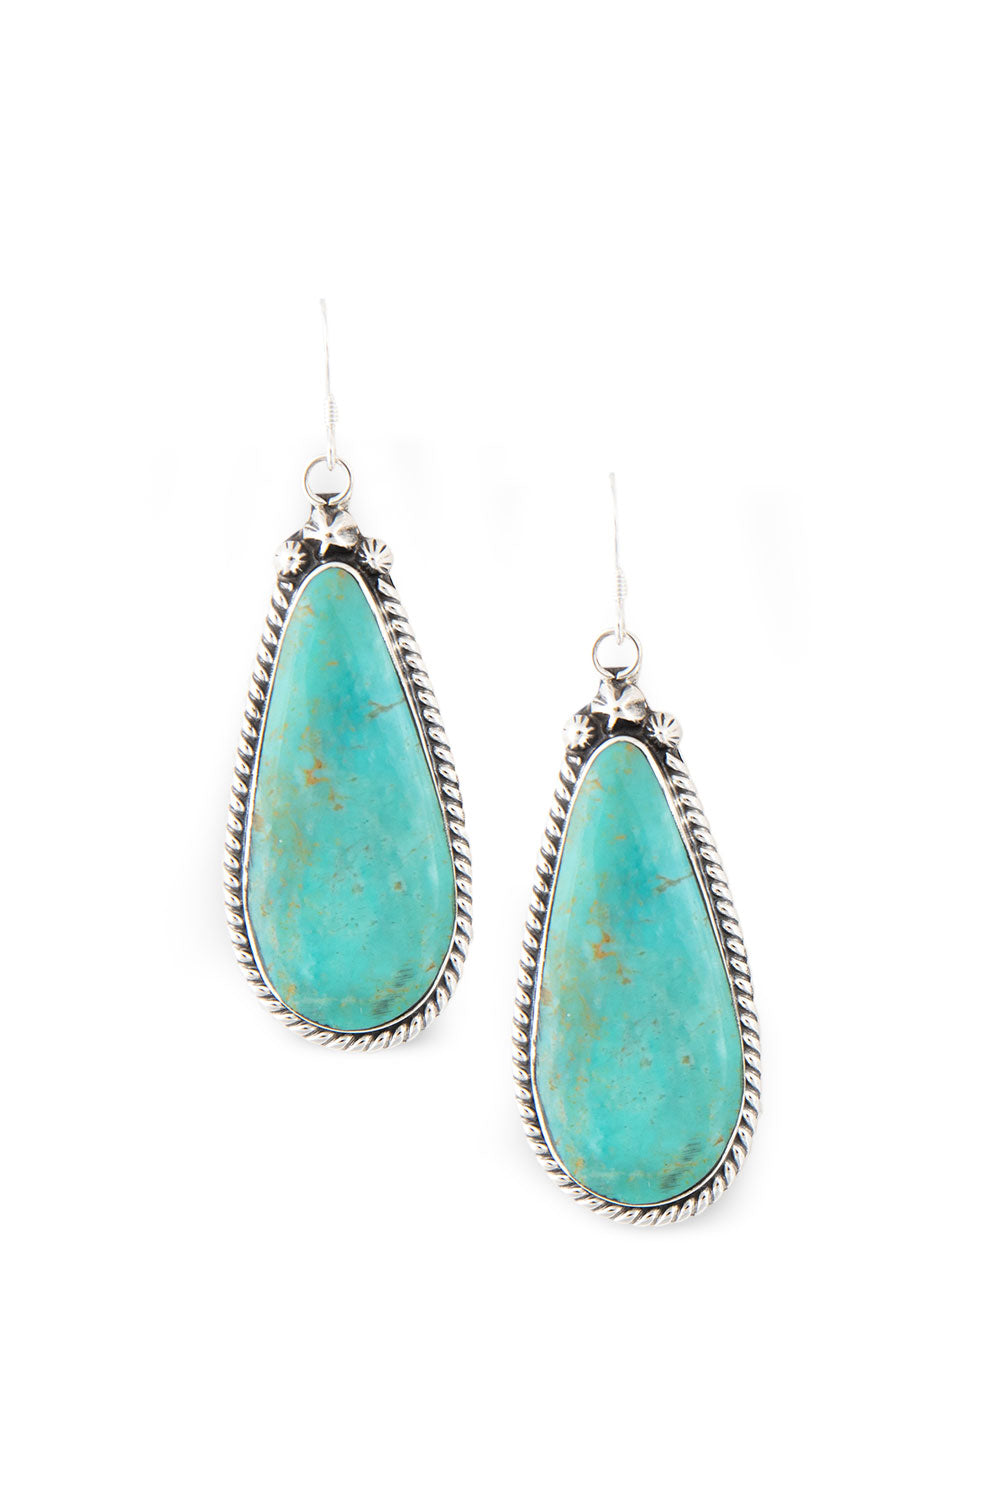 Earrings, Slab, Turquoise, Hallmark, 396-2